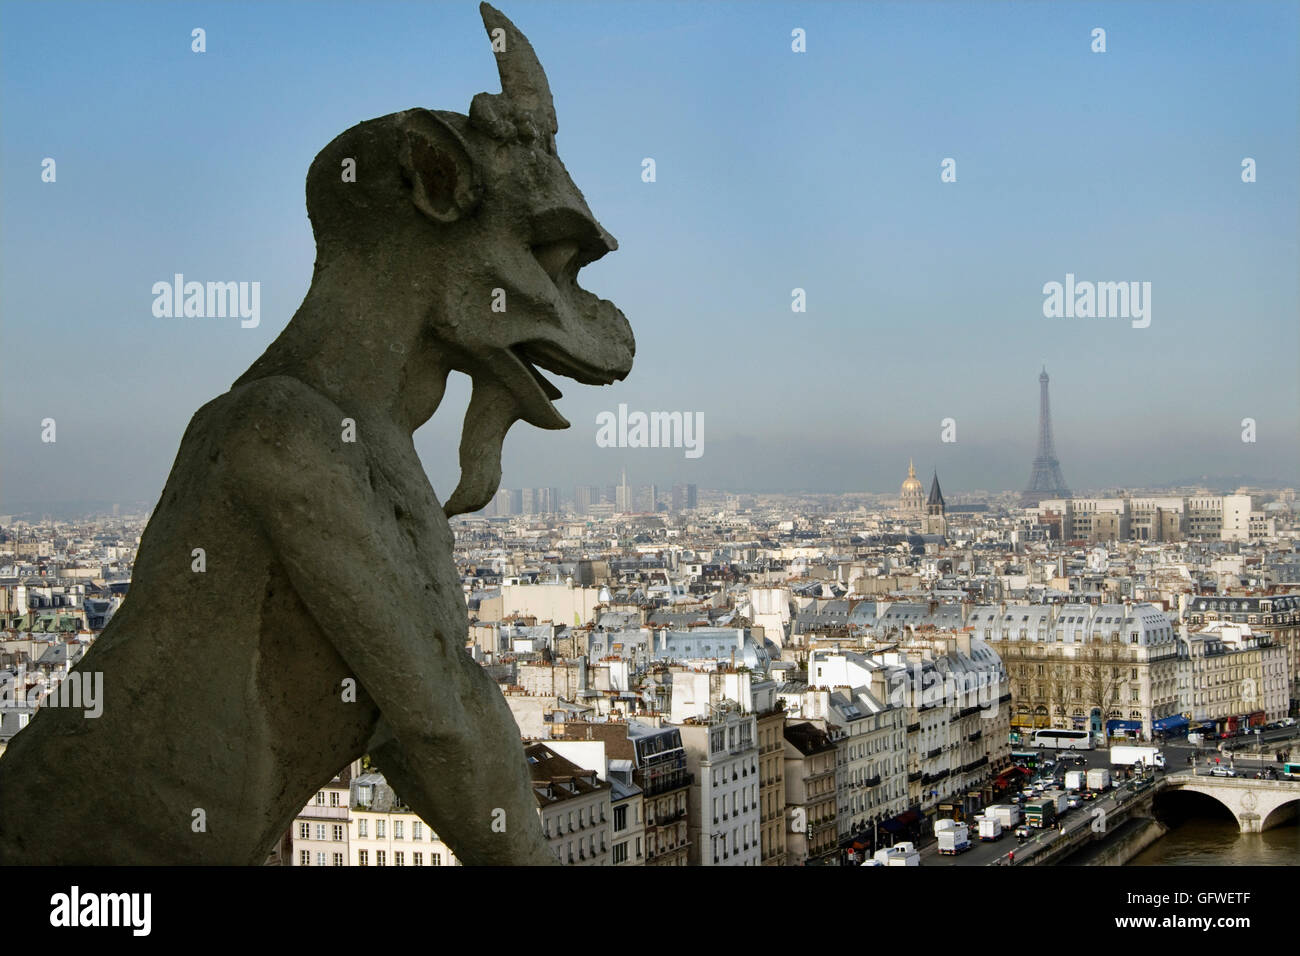 A photograph of the Galerie des Chimeres from the top of notre dame in Paris - Stock Image